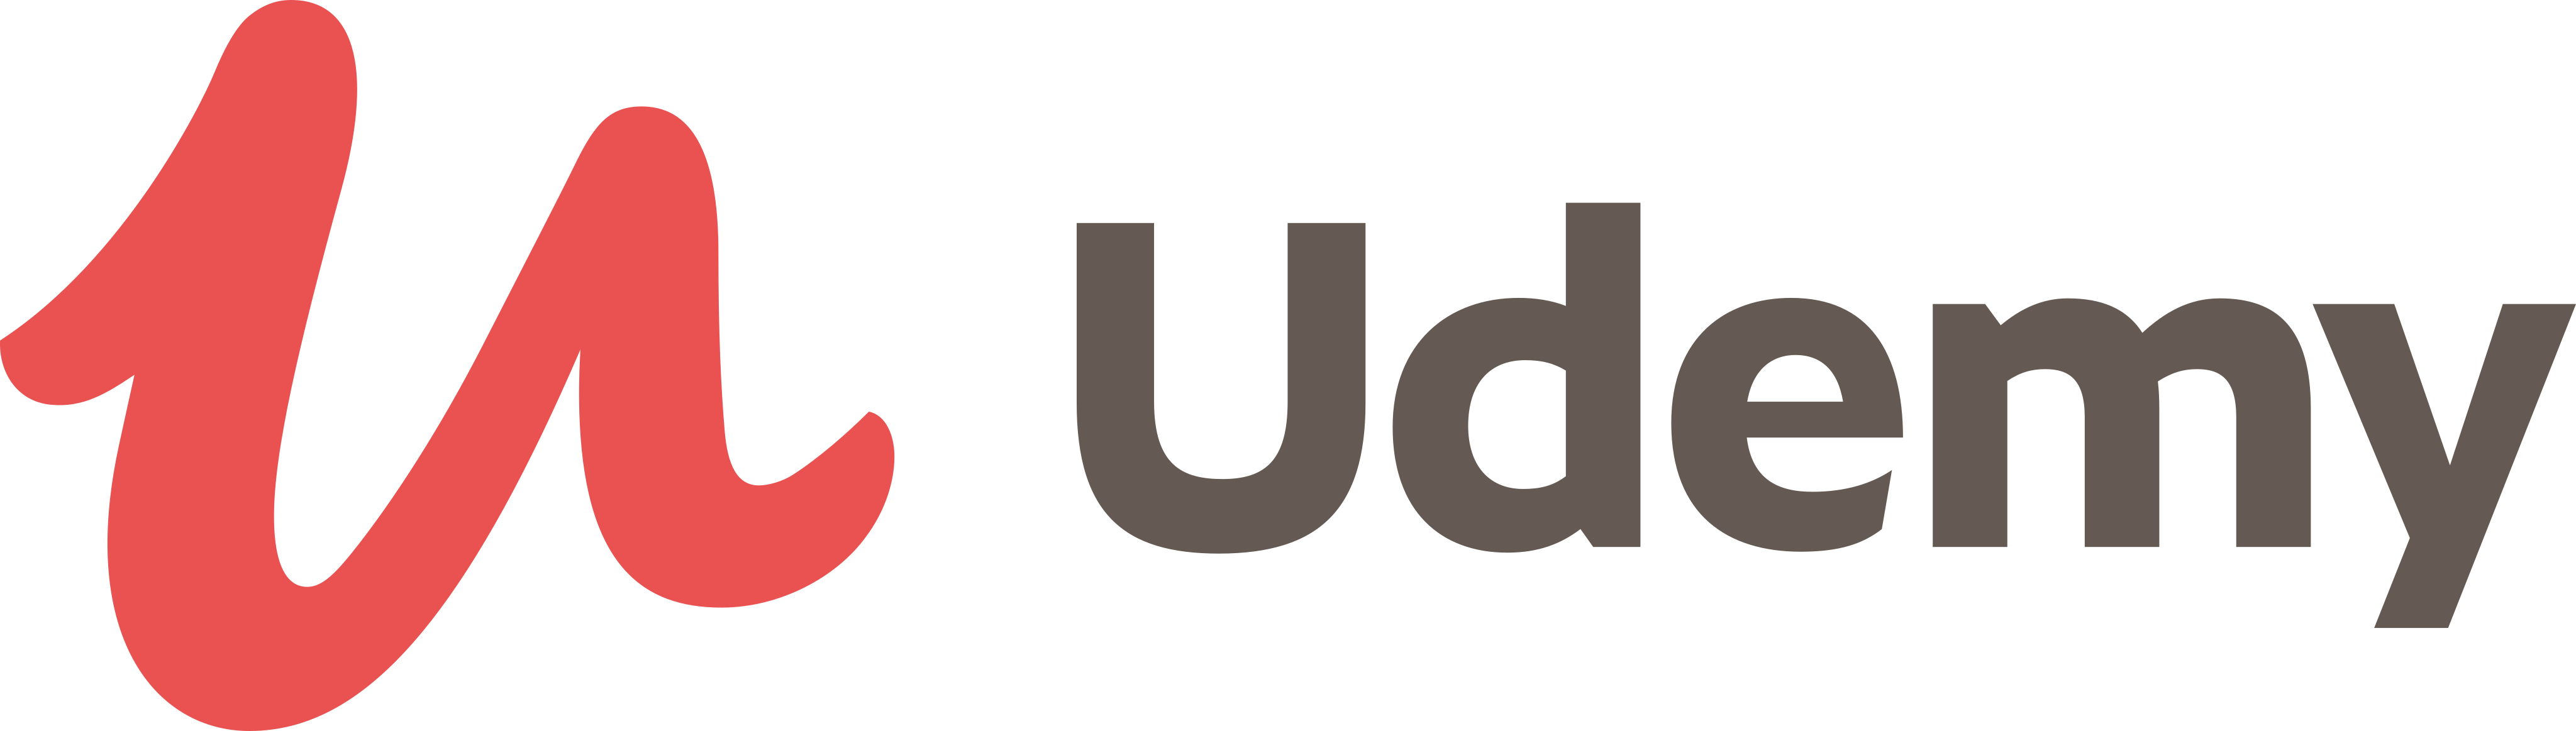 udemy logo - Udemy Logo